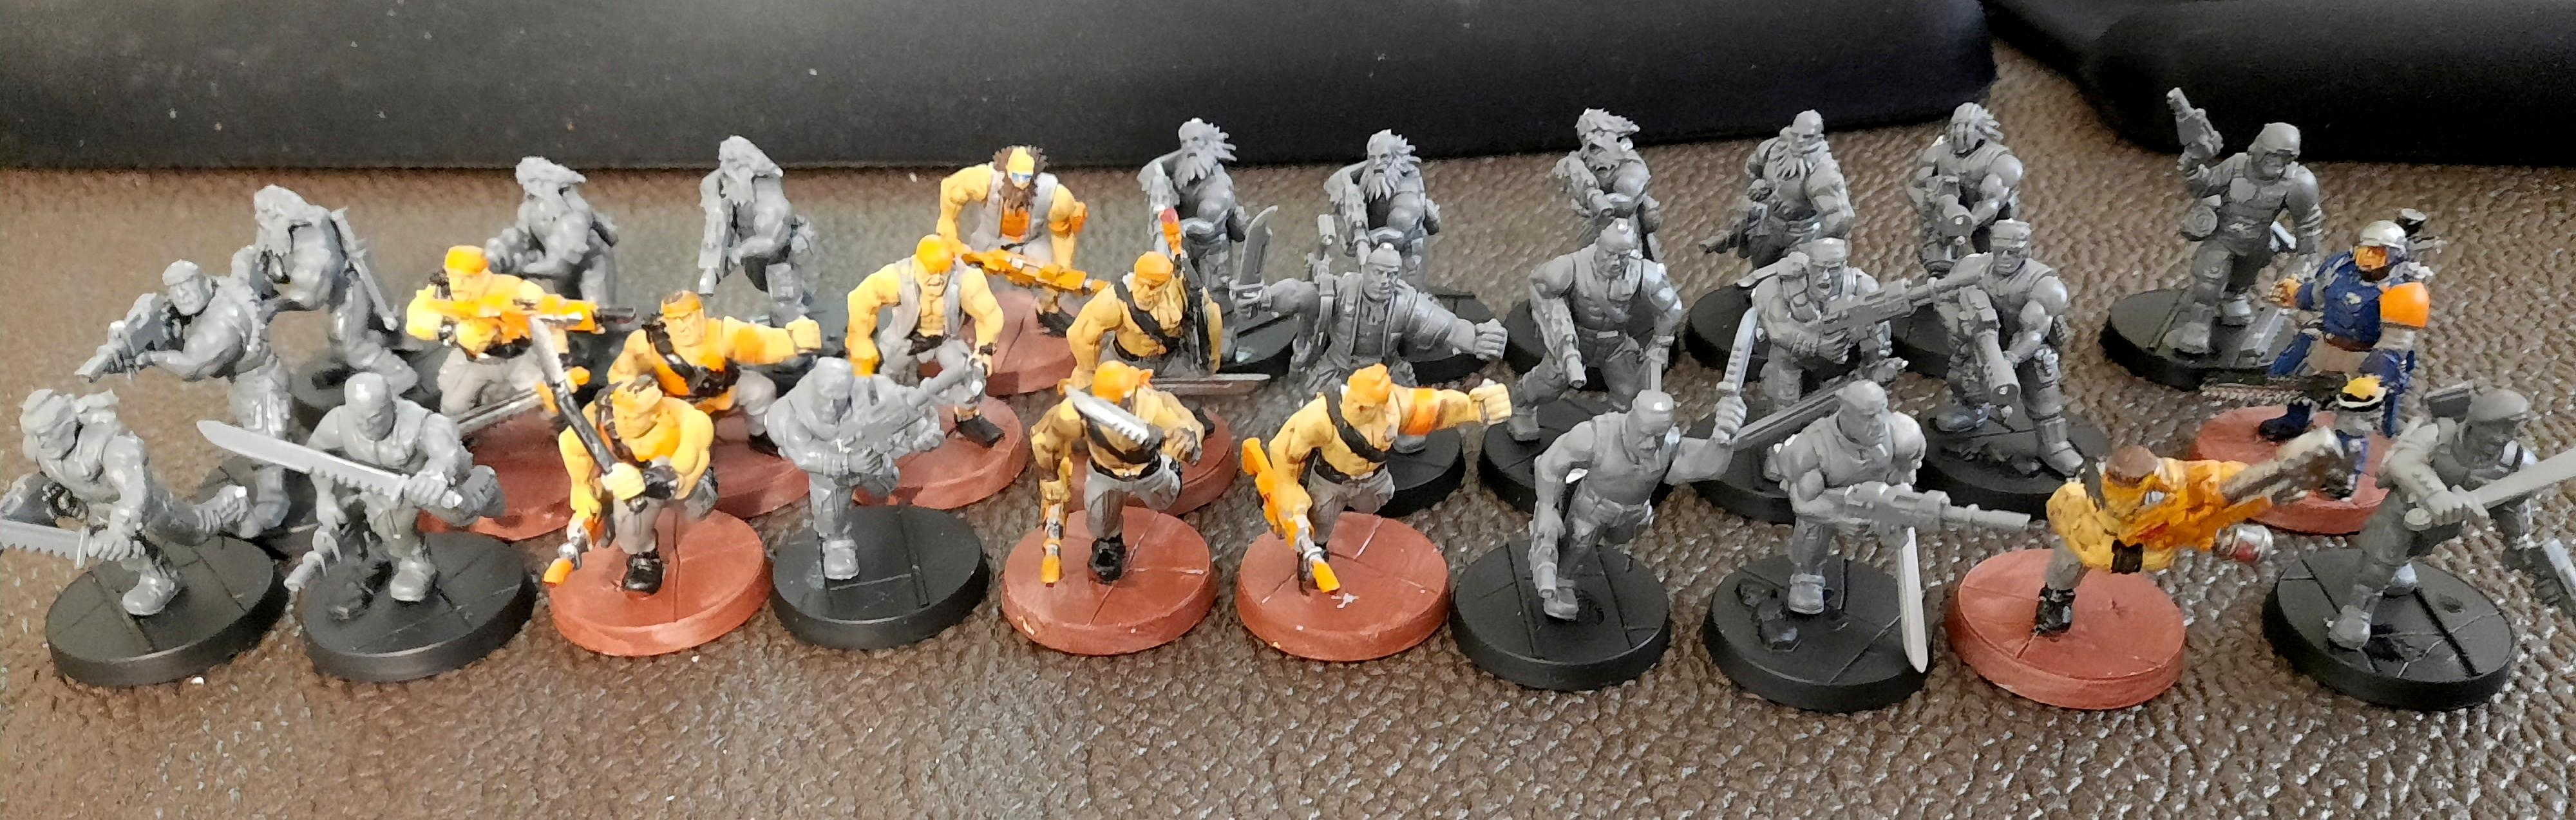 Adeptus Arbites, Catachan, Imperial Guard, Penal Legion